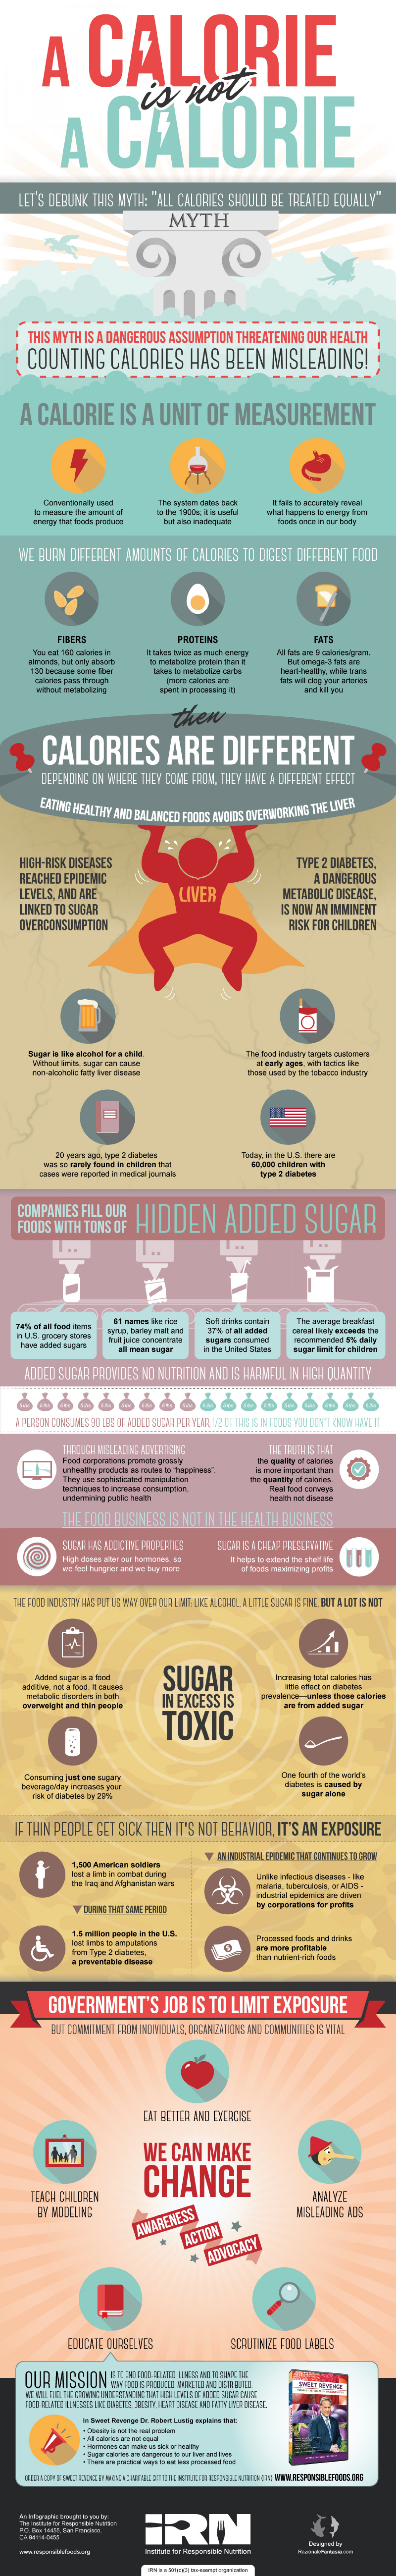 A Calorie is not a Calorie Infographic